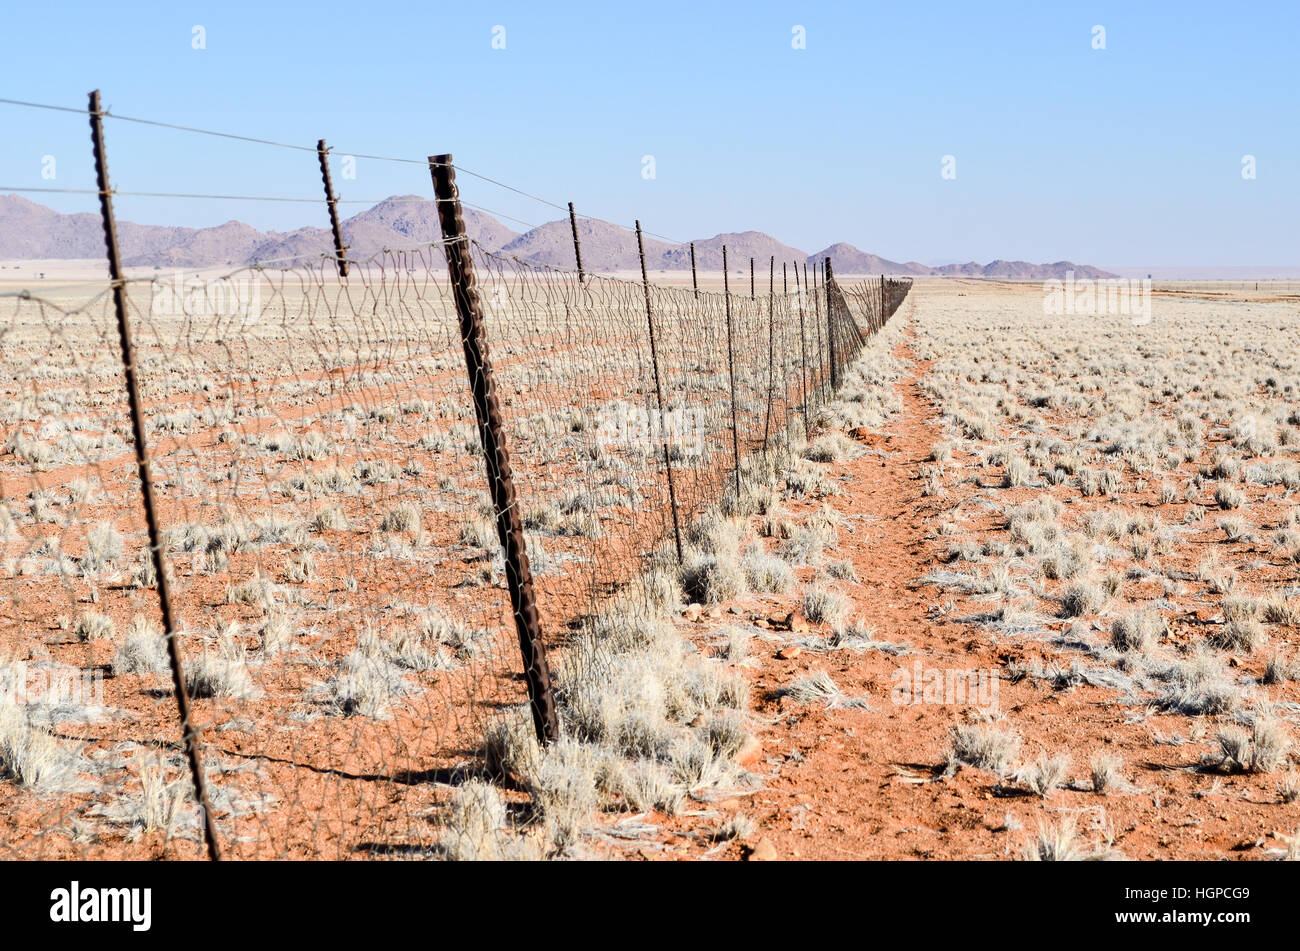 High fence for game reserve in Namibia - Stock Image